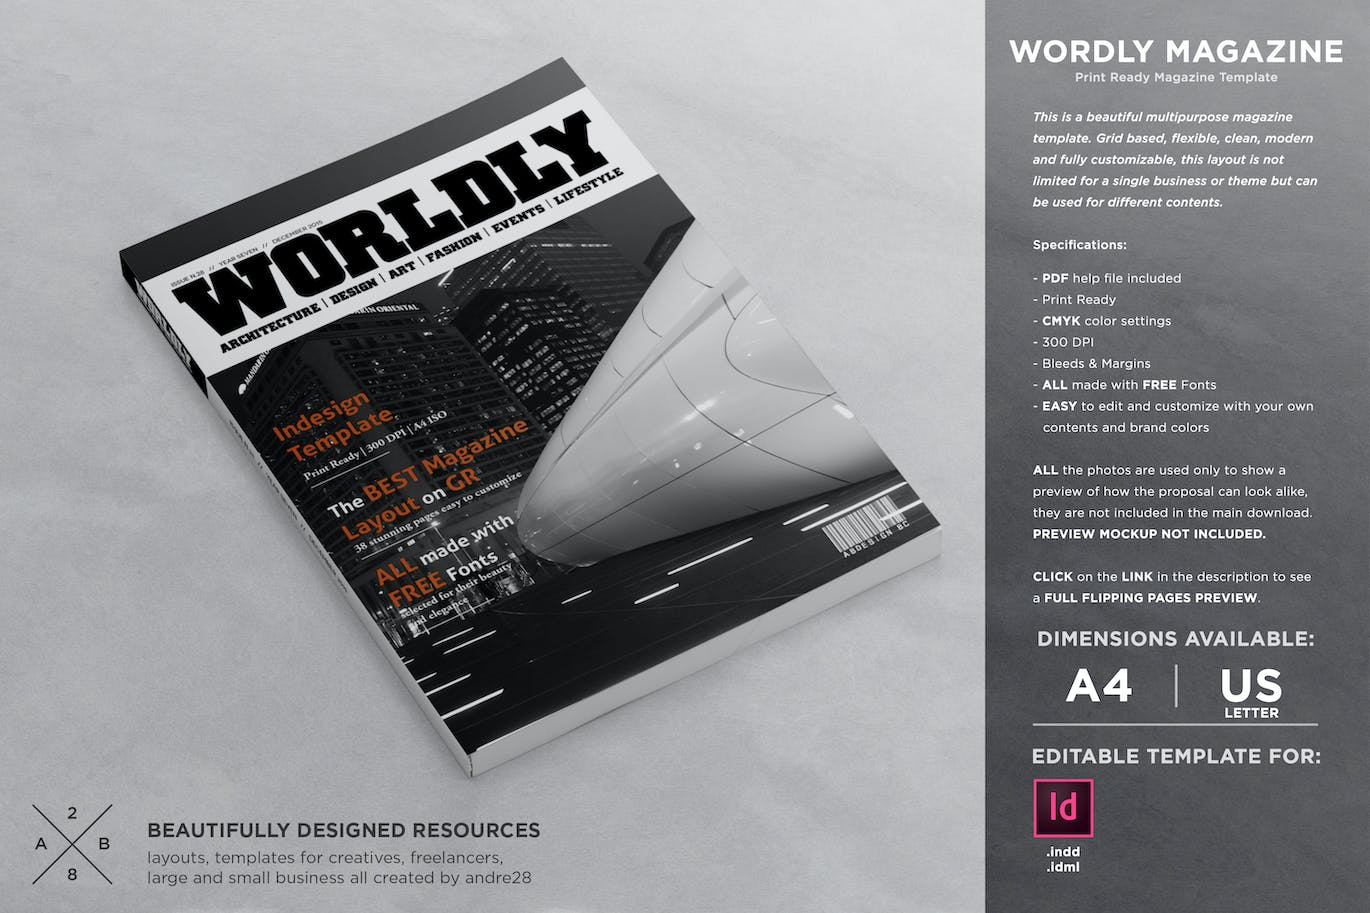 9217d8b5ff361 Wordly Magazine Indesign Template by andre28 on Envato Elements